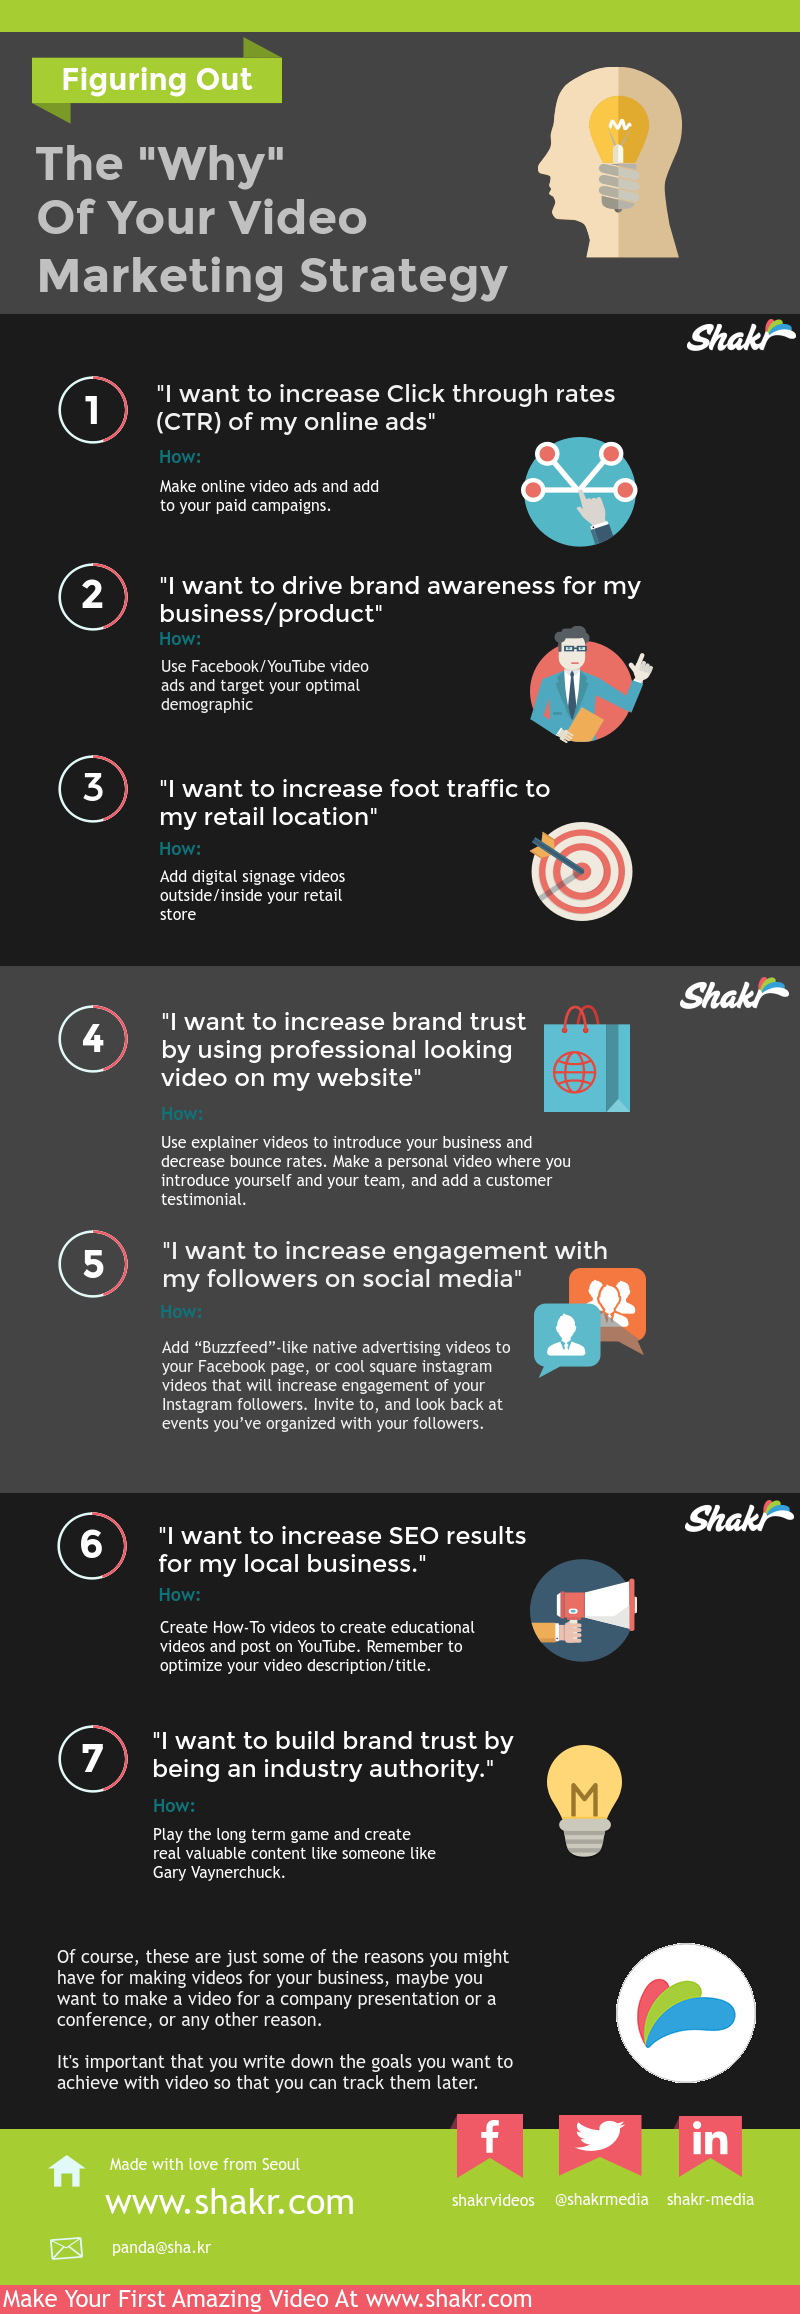 You guide to video marketing